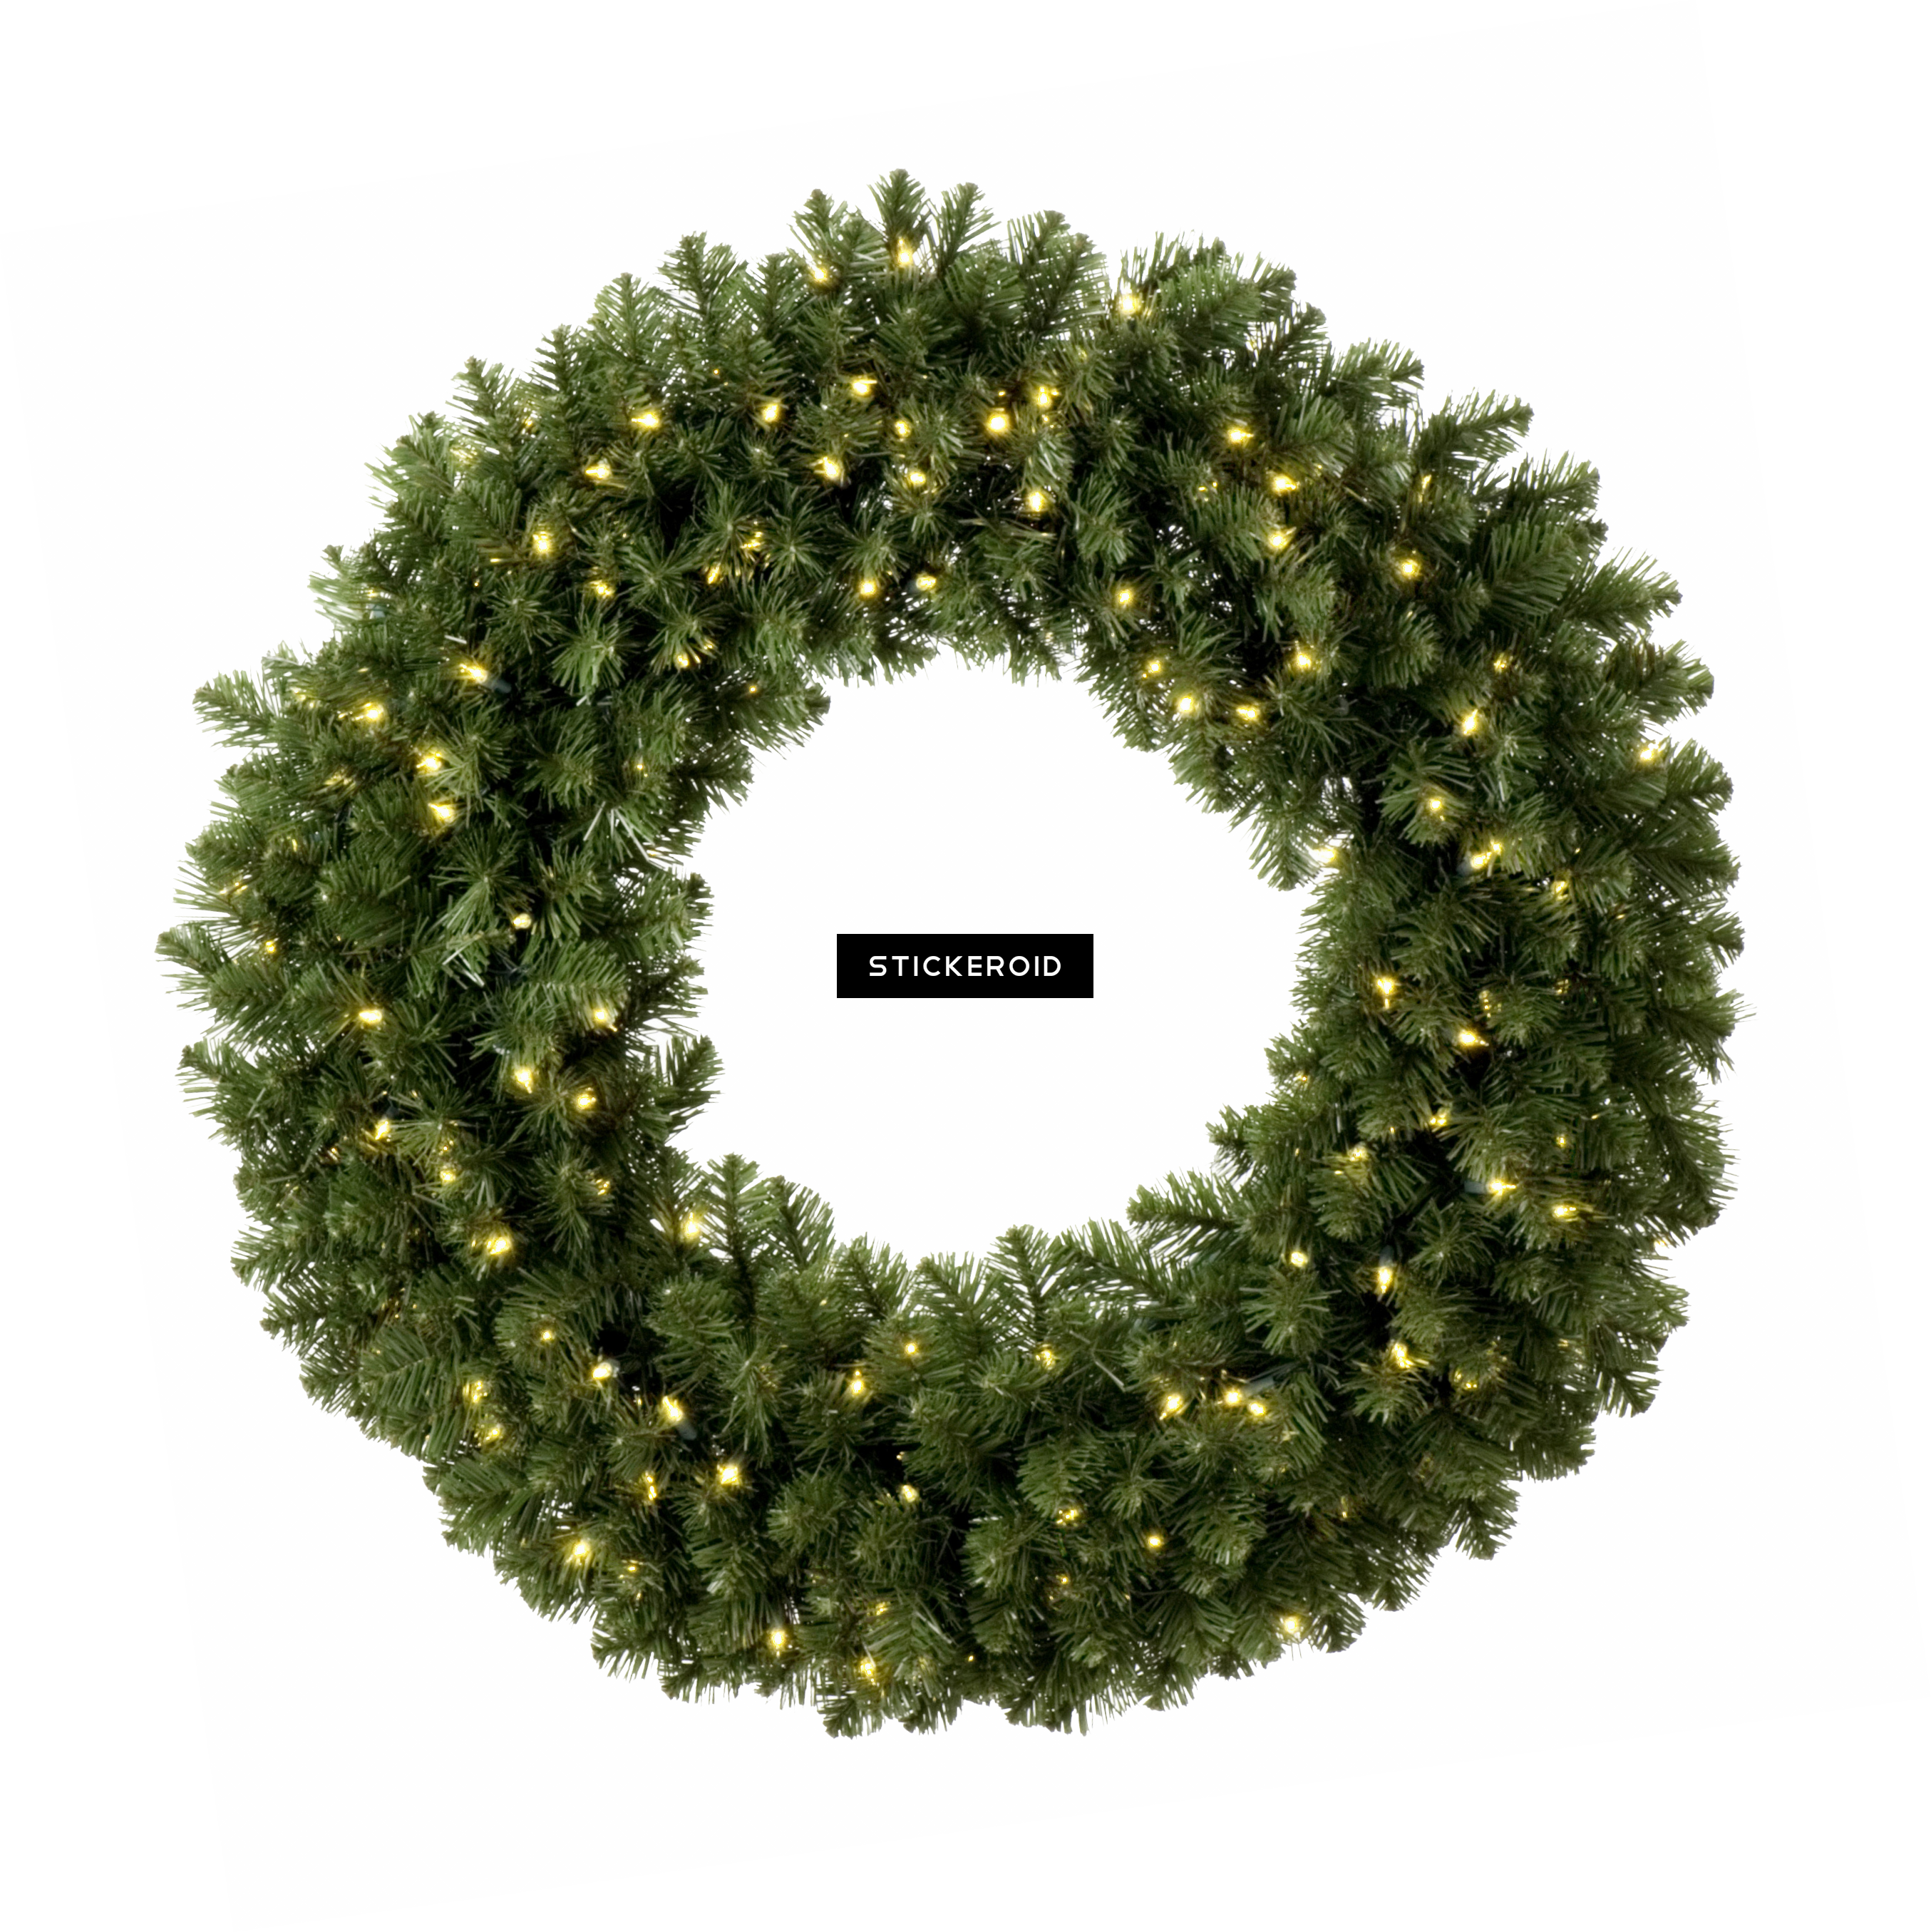 Christmas Wreath Png Transparent.Christmas Wreath Png Download Transparent Background